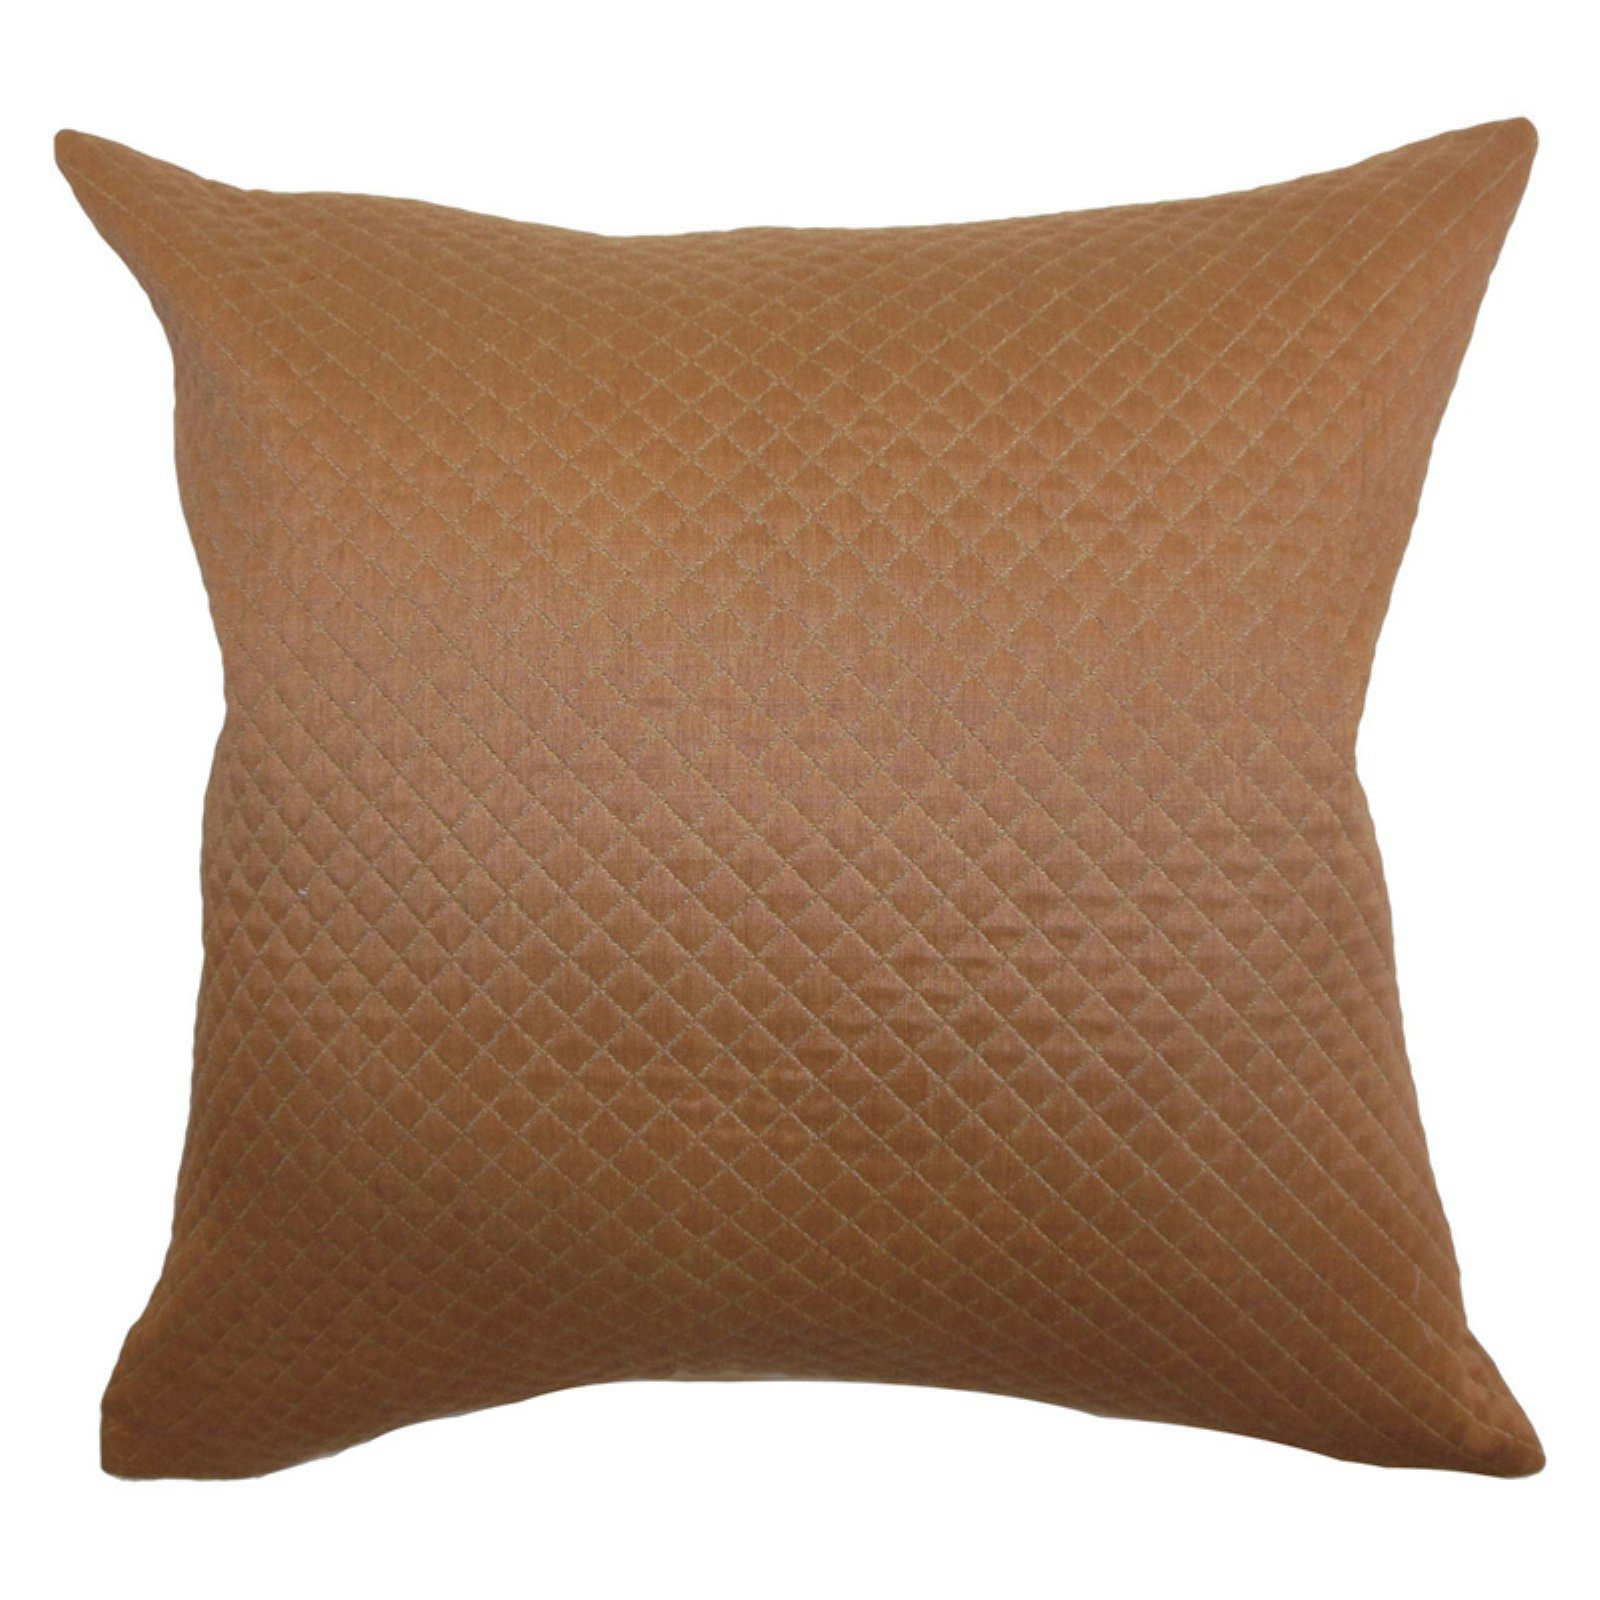 The Pillow Collection Ochs Quilted Pillow - Brown